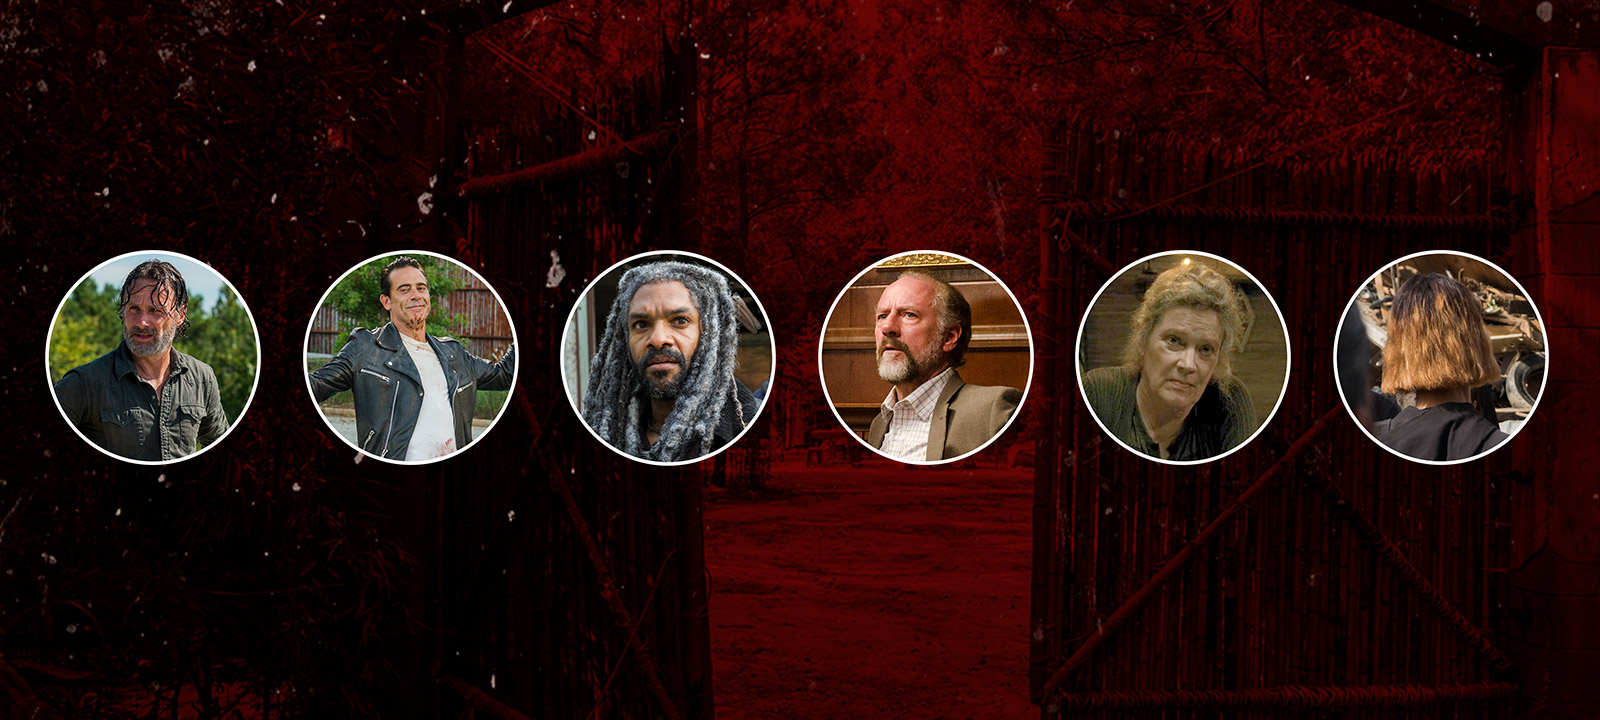 the-walking-dead-season-7b-rick-lincoln-negan-morgan-infographic-800×600